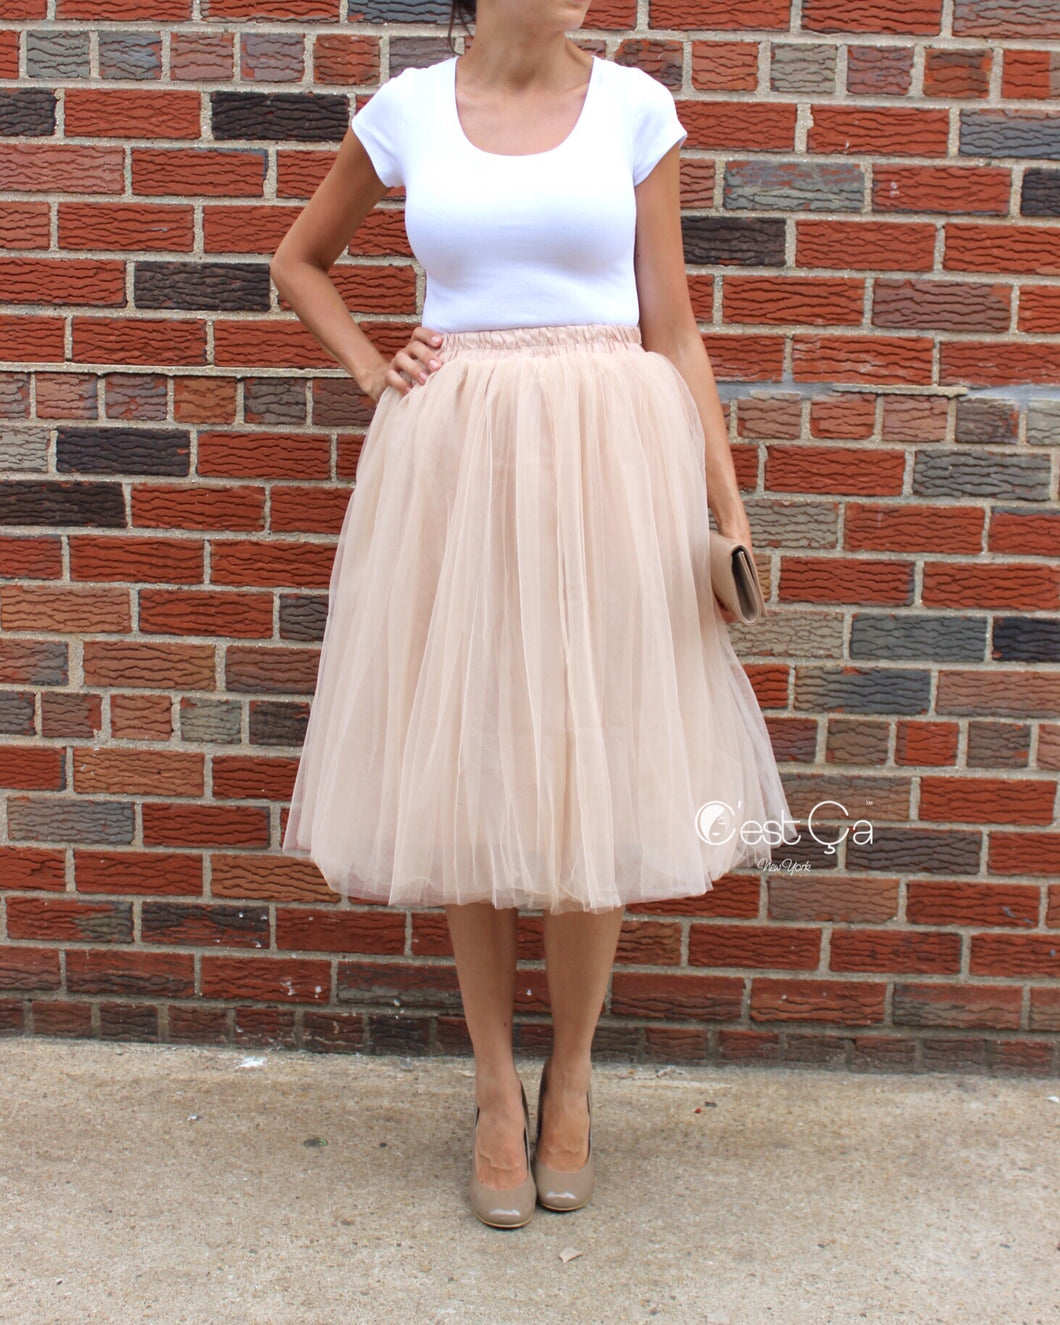 Claire Beige Soft Tulle Skirt - Below Knee Midi - C'est Ça New York